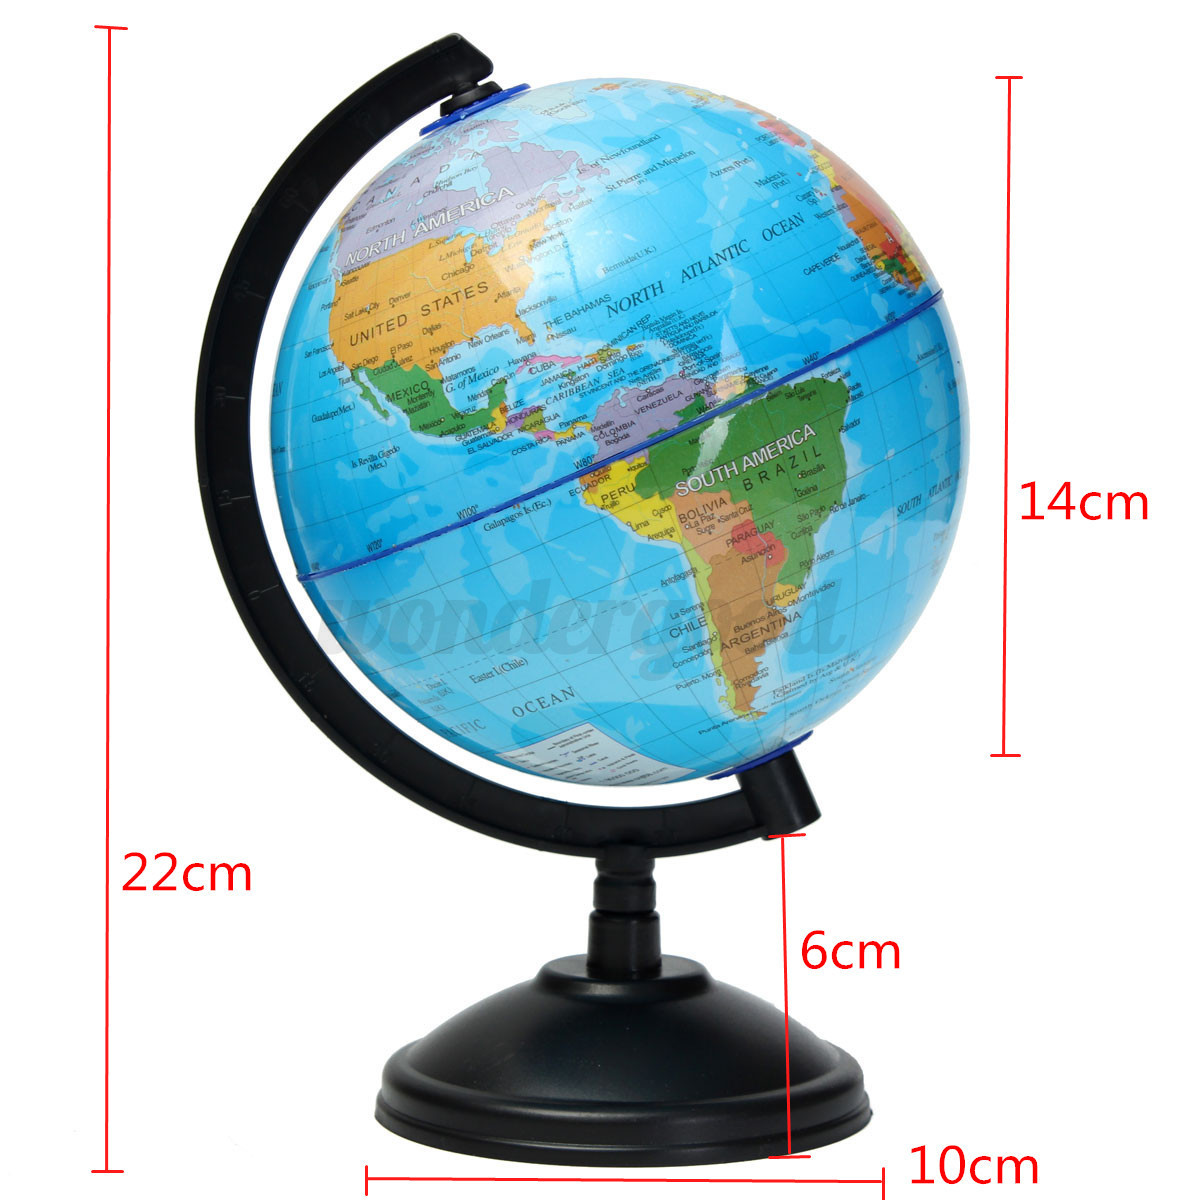 85 32cm atlas world map earth globe swivel stand geography resntentobalflowflowcomponenttechnicalissues gumiabroncs Image collections